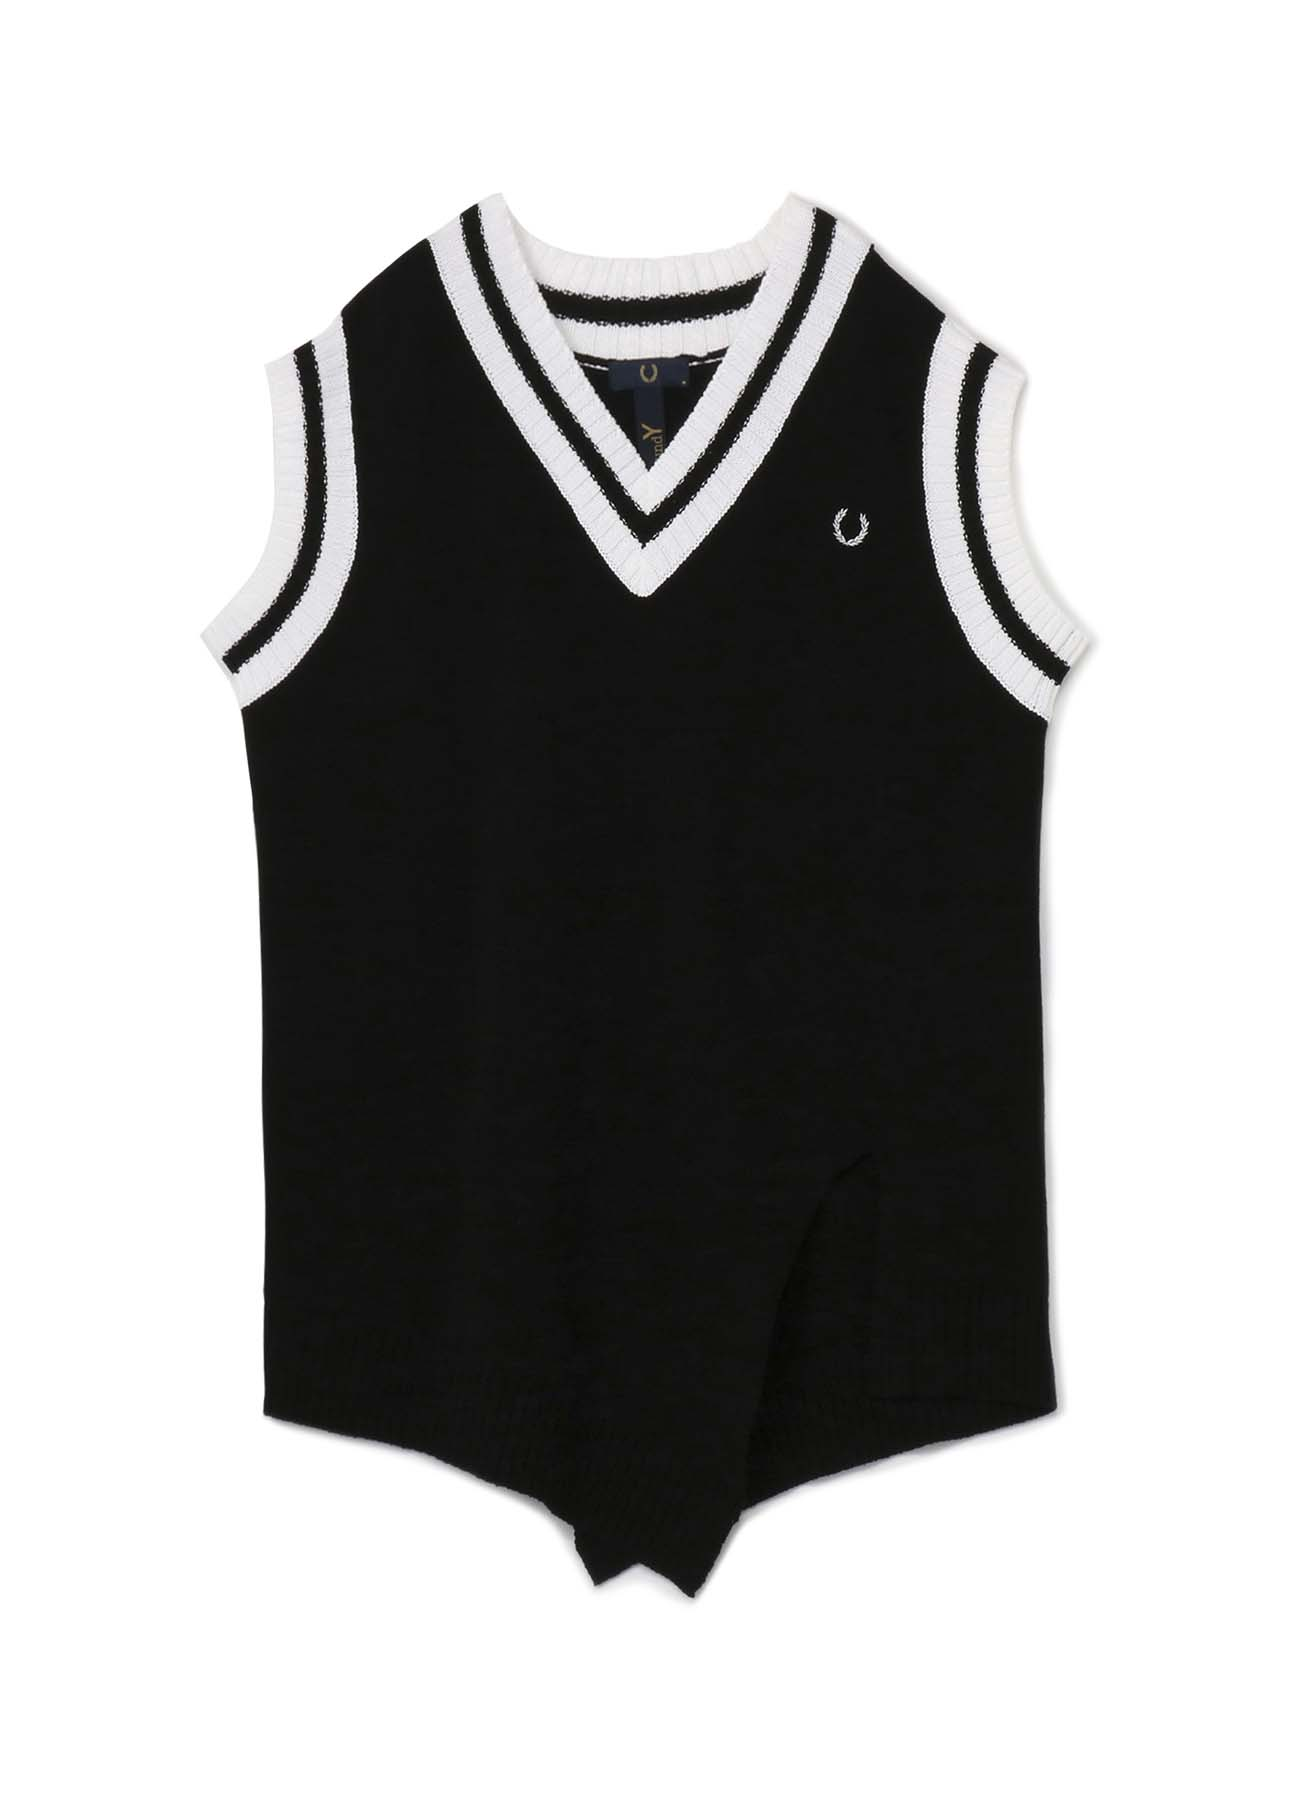 FRED PERRY collaboration Knit Vest